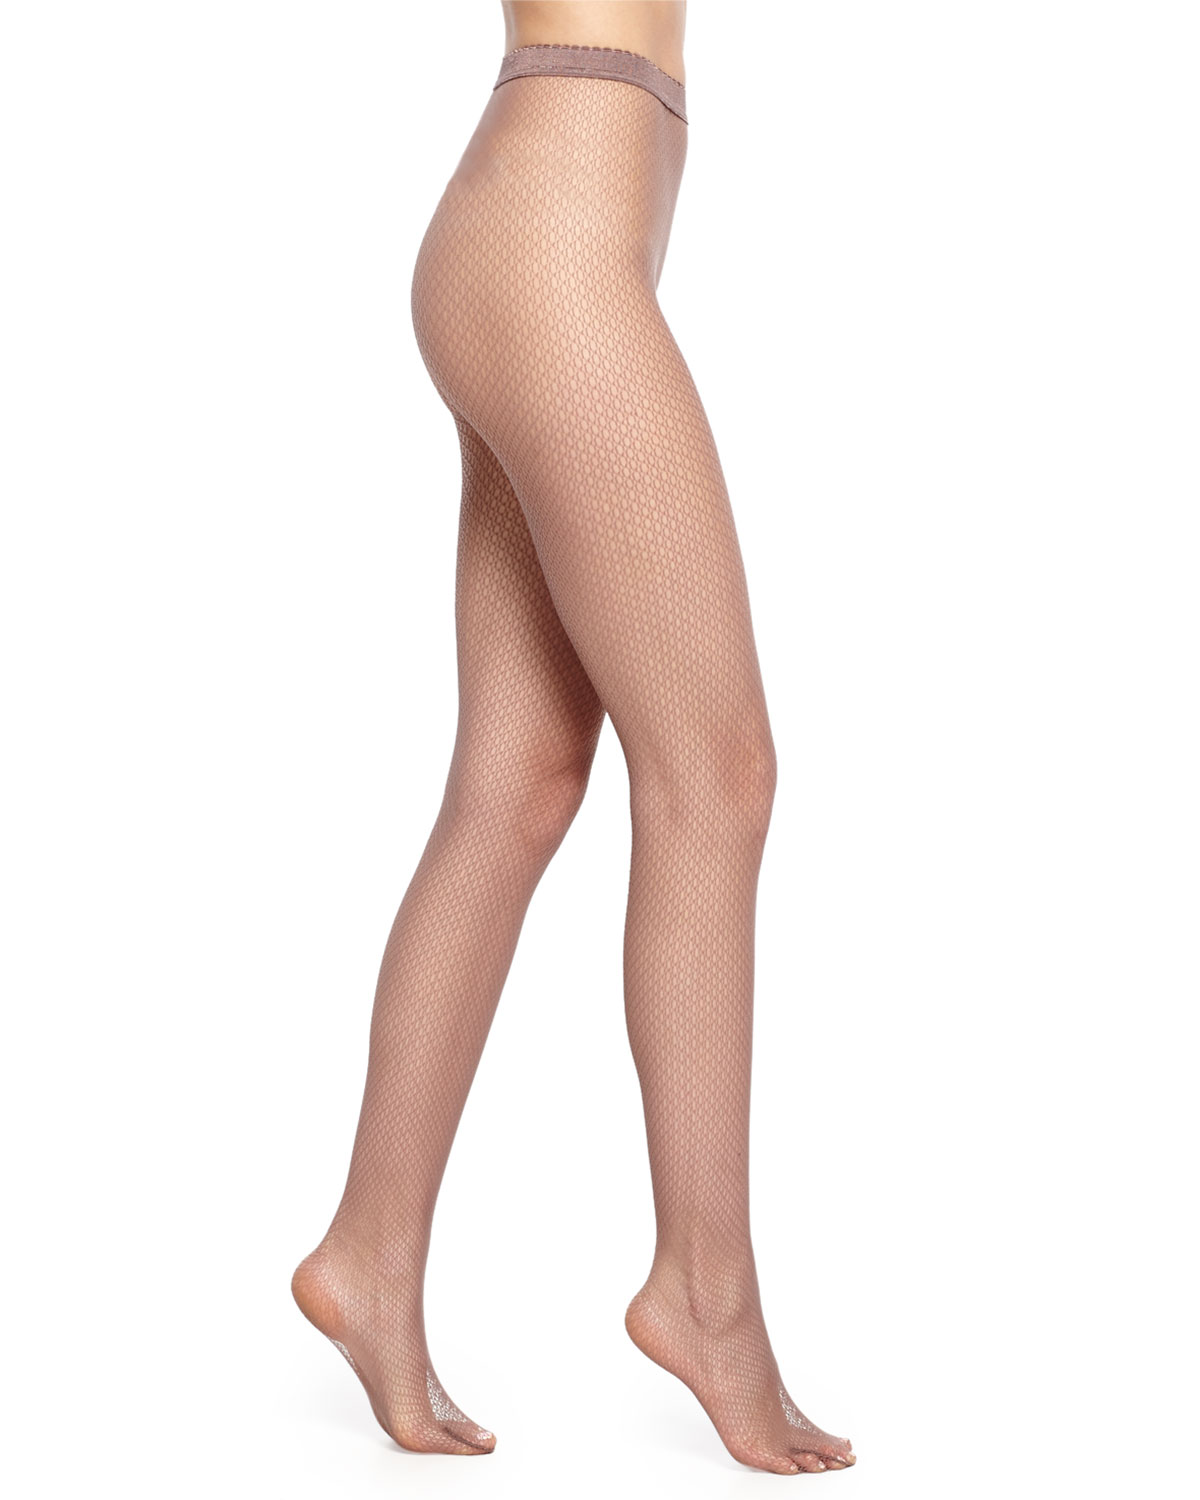 Wolford Netsation Open-Mesh Tights, Size: L, Clove